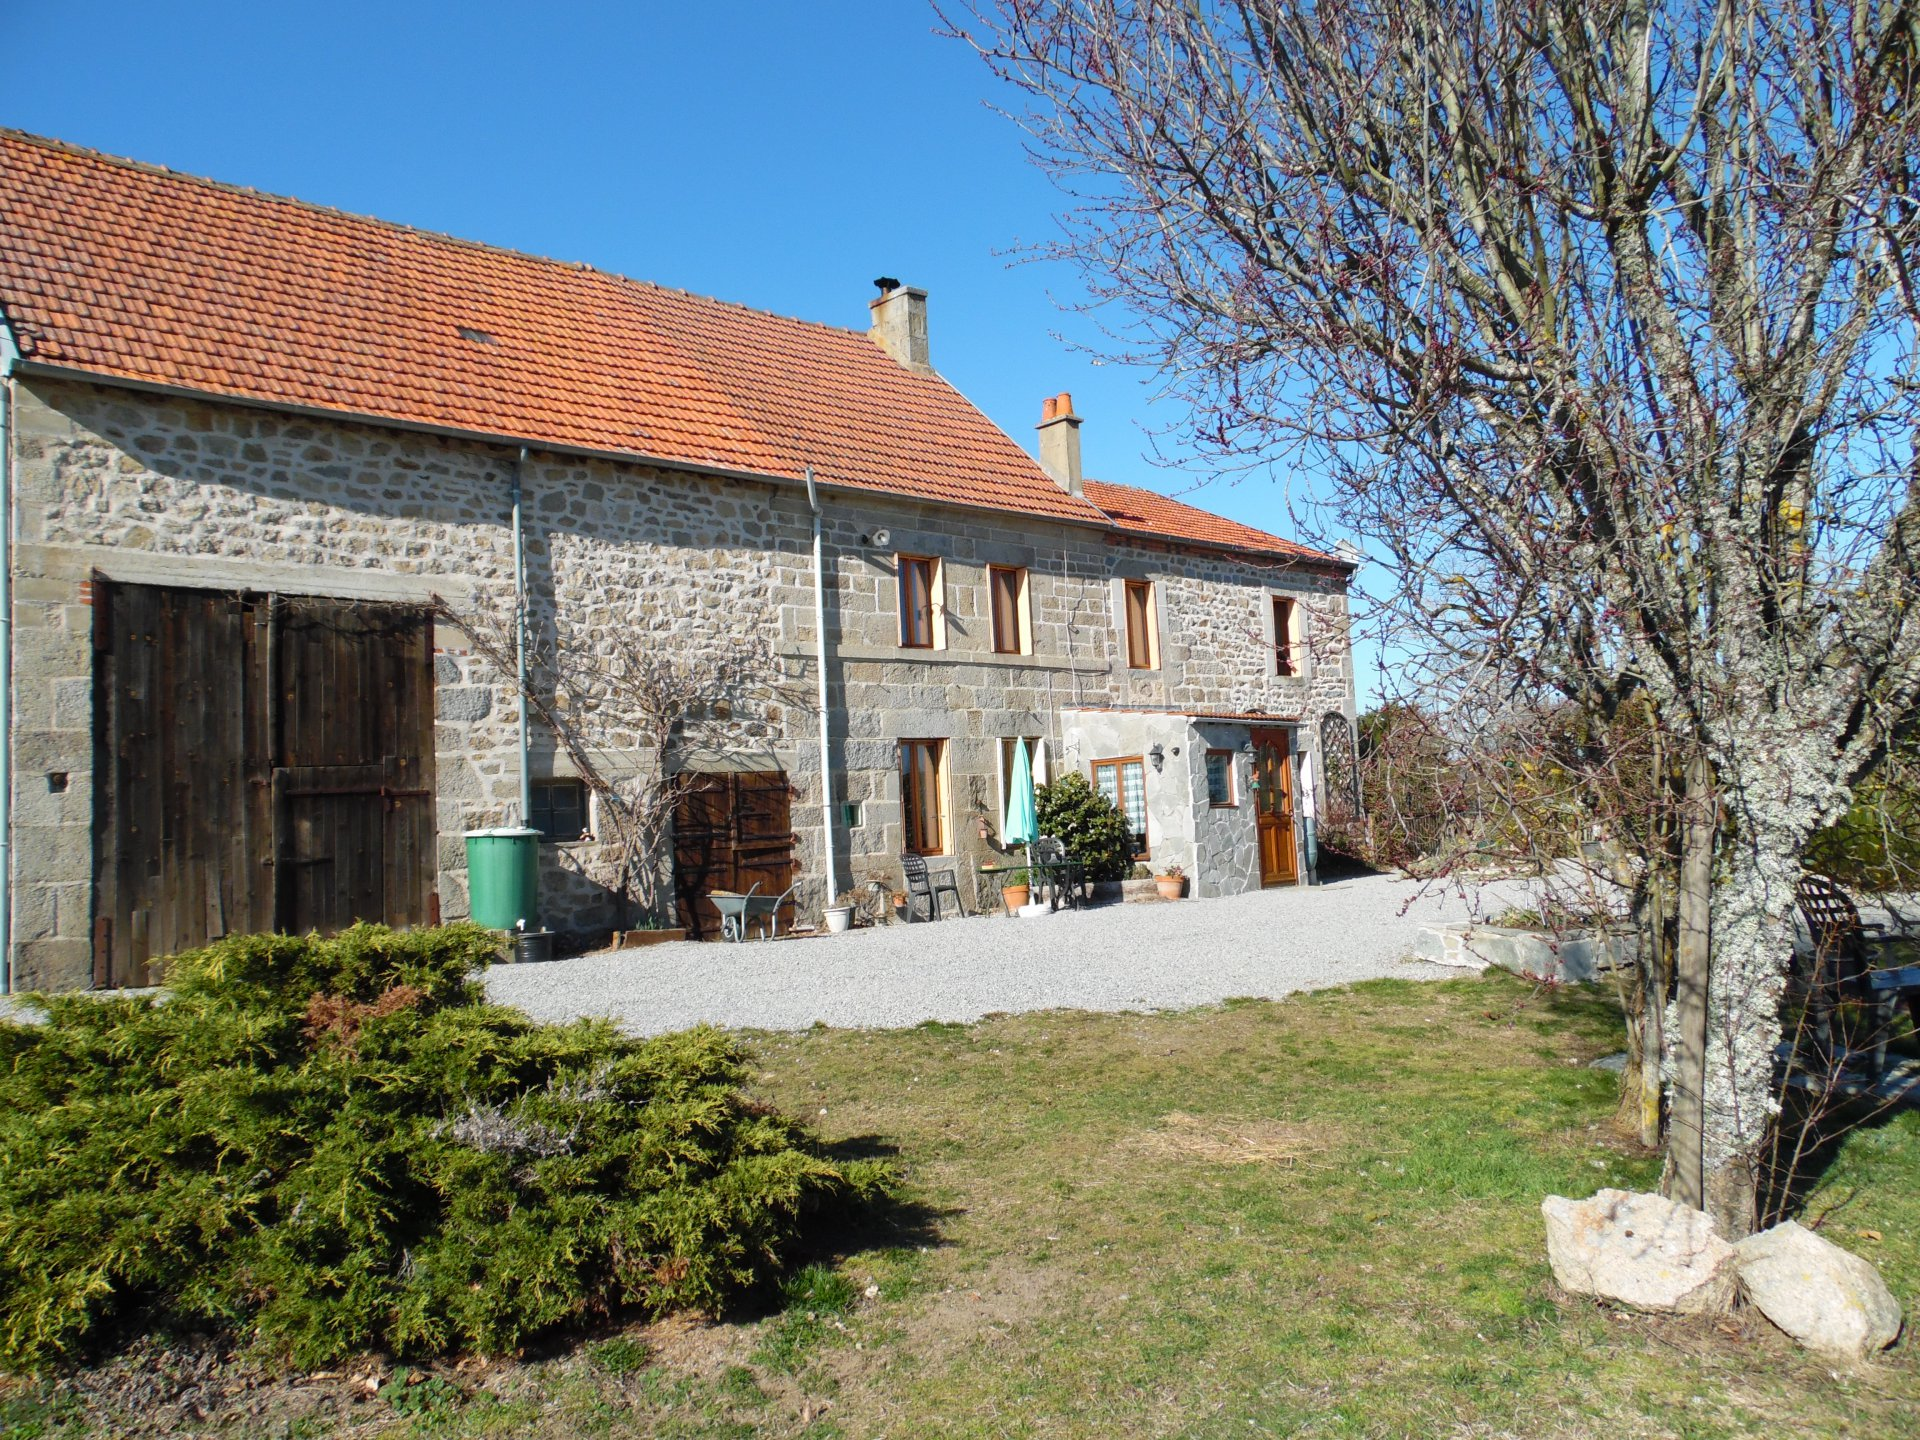 For sale in Creuse, stone built house, outbuildings and land (16547m²)